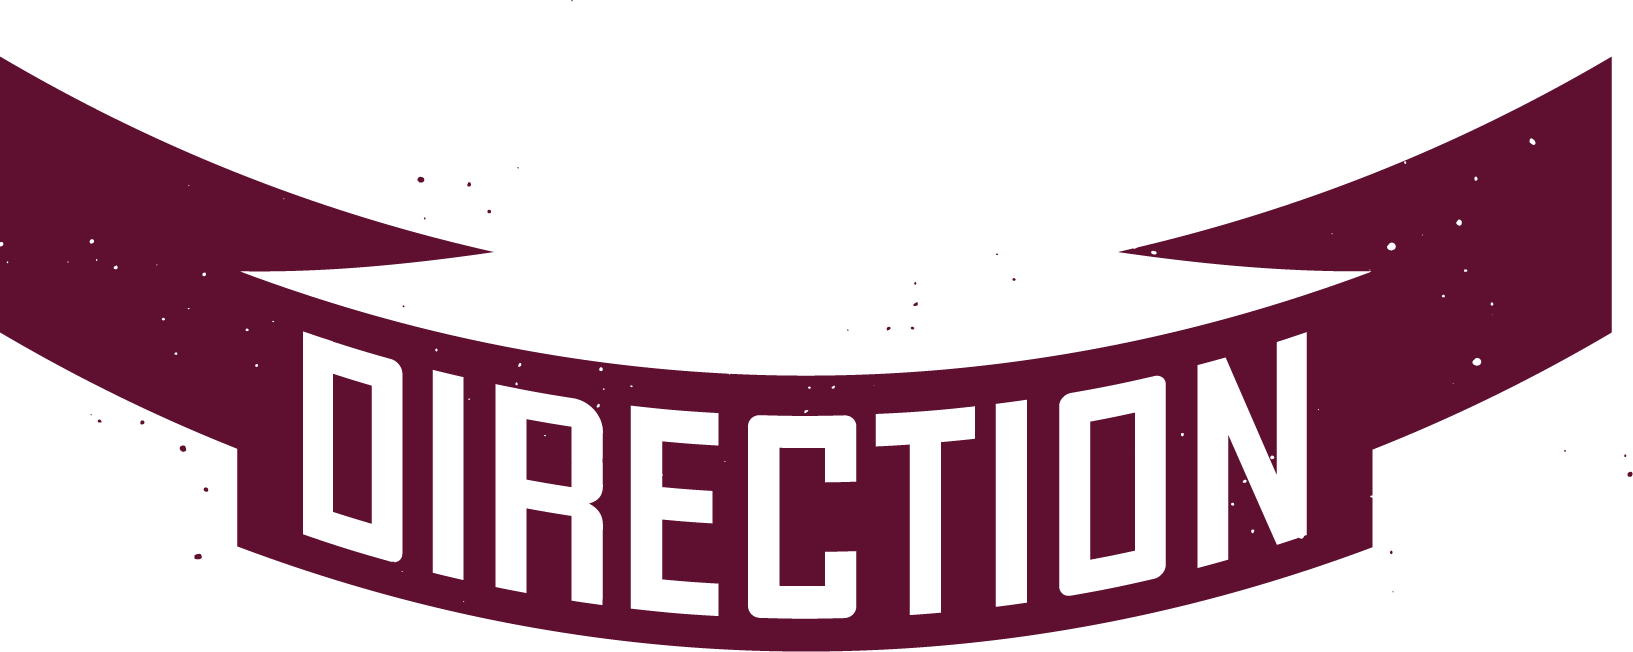 direction.png